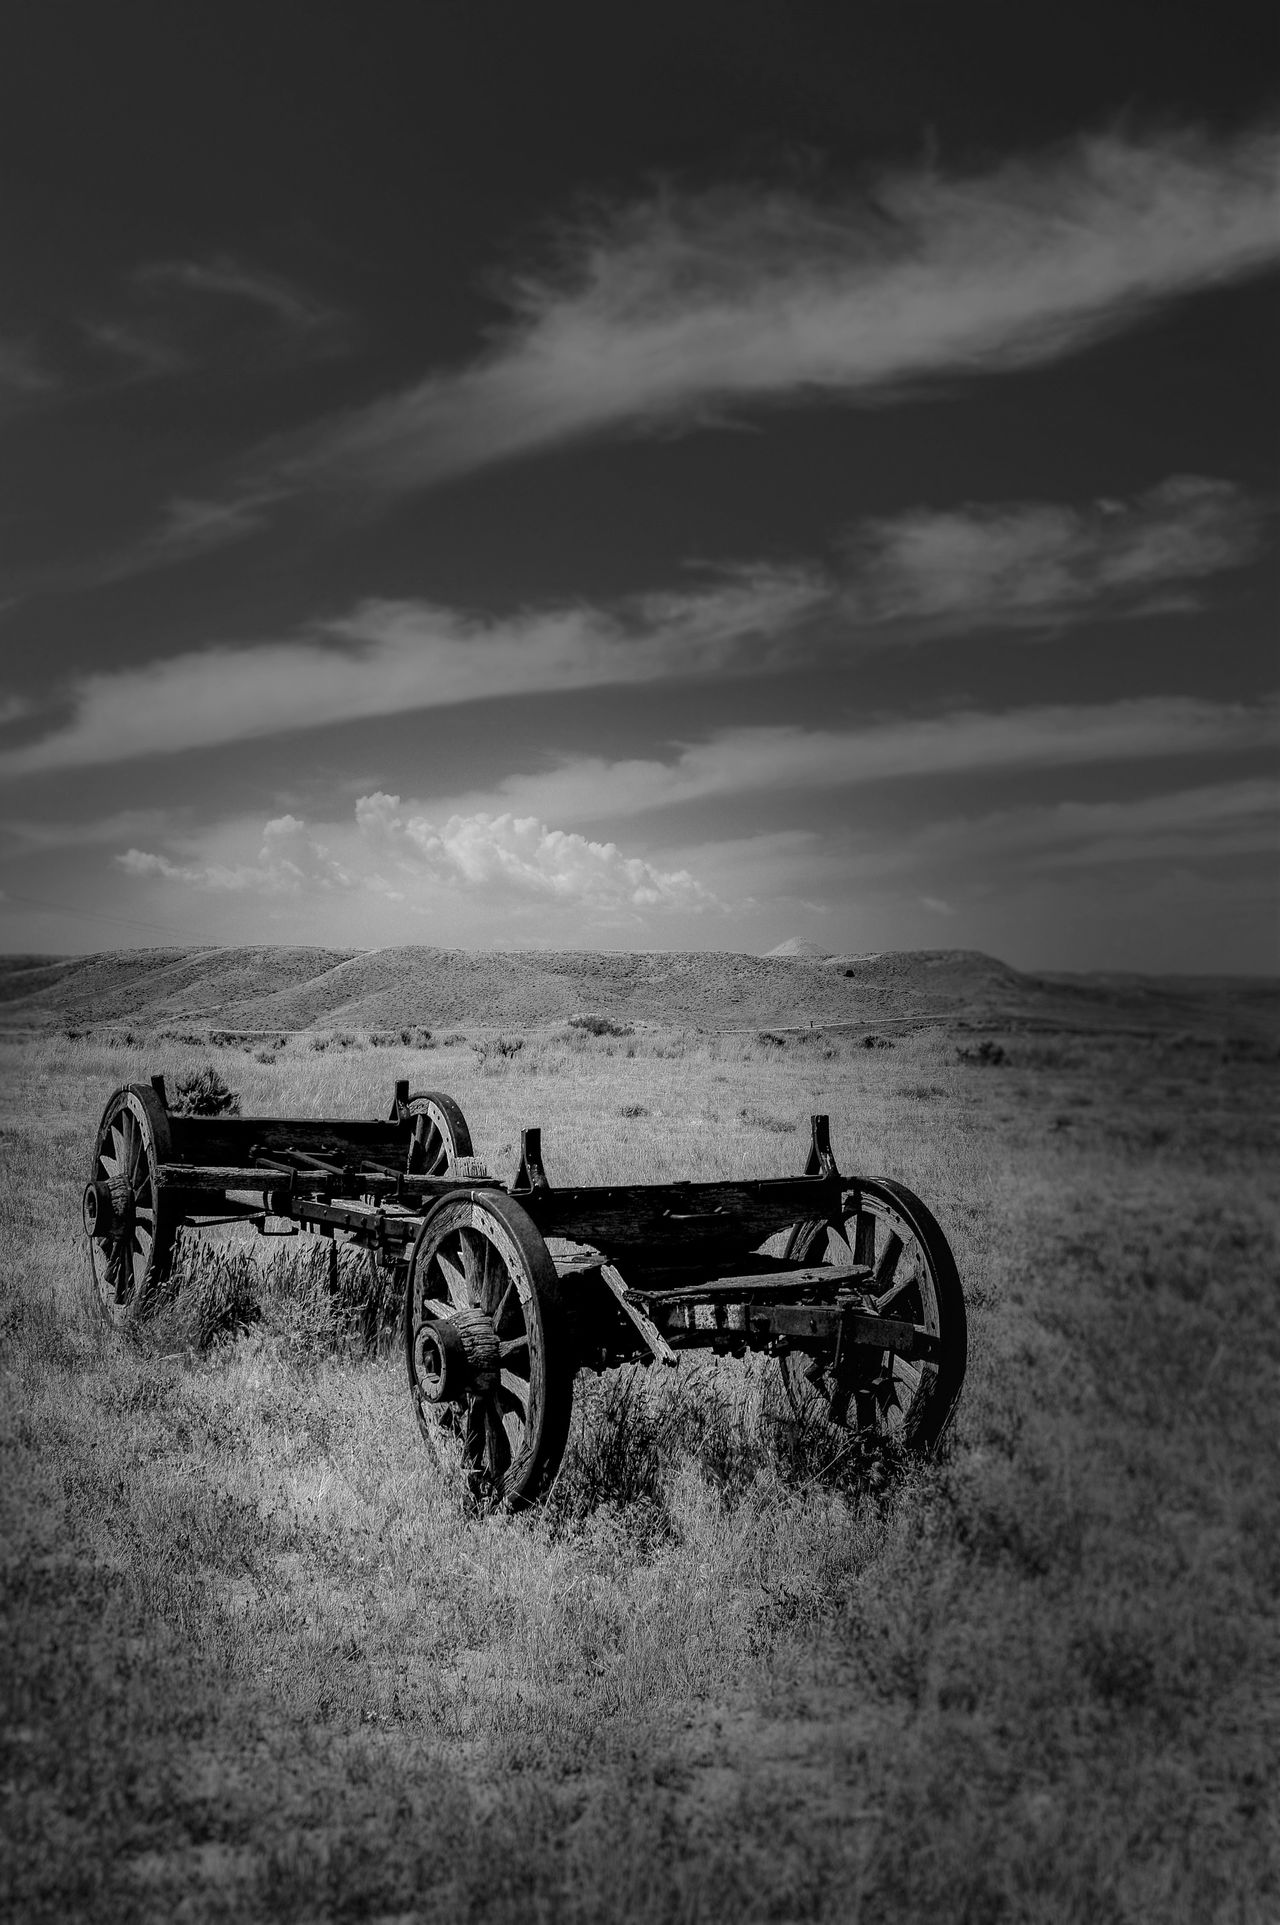 Wagon from the past Fort Fetterman Black And White Black And White Photography Day Field From Old Military Base Landscape No People North Of Douglas Wyomning Outdoors